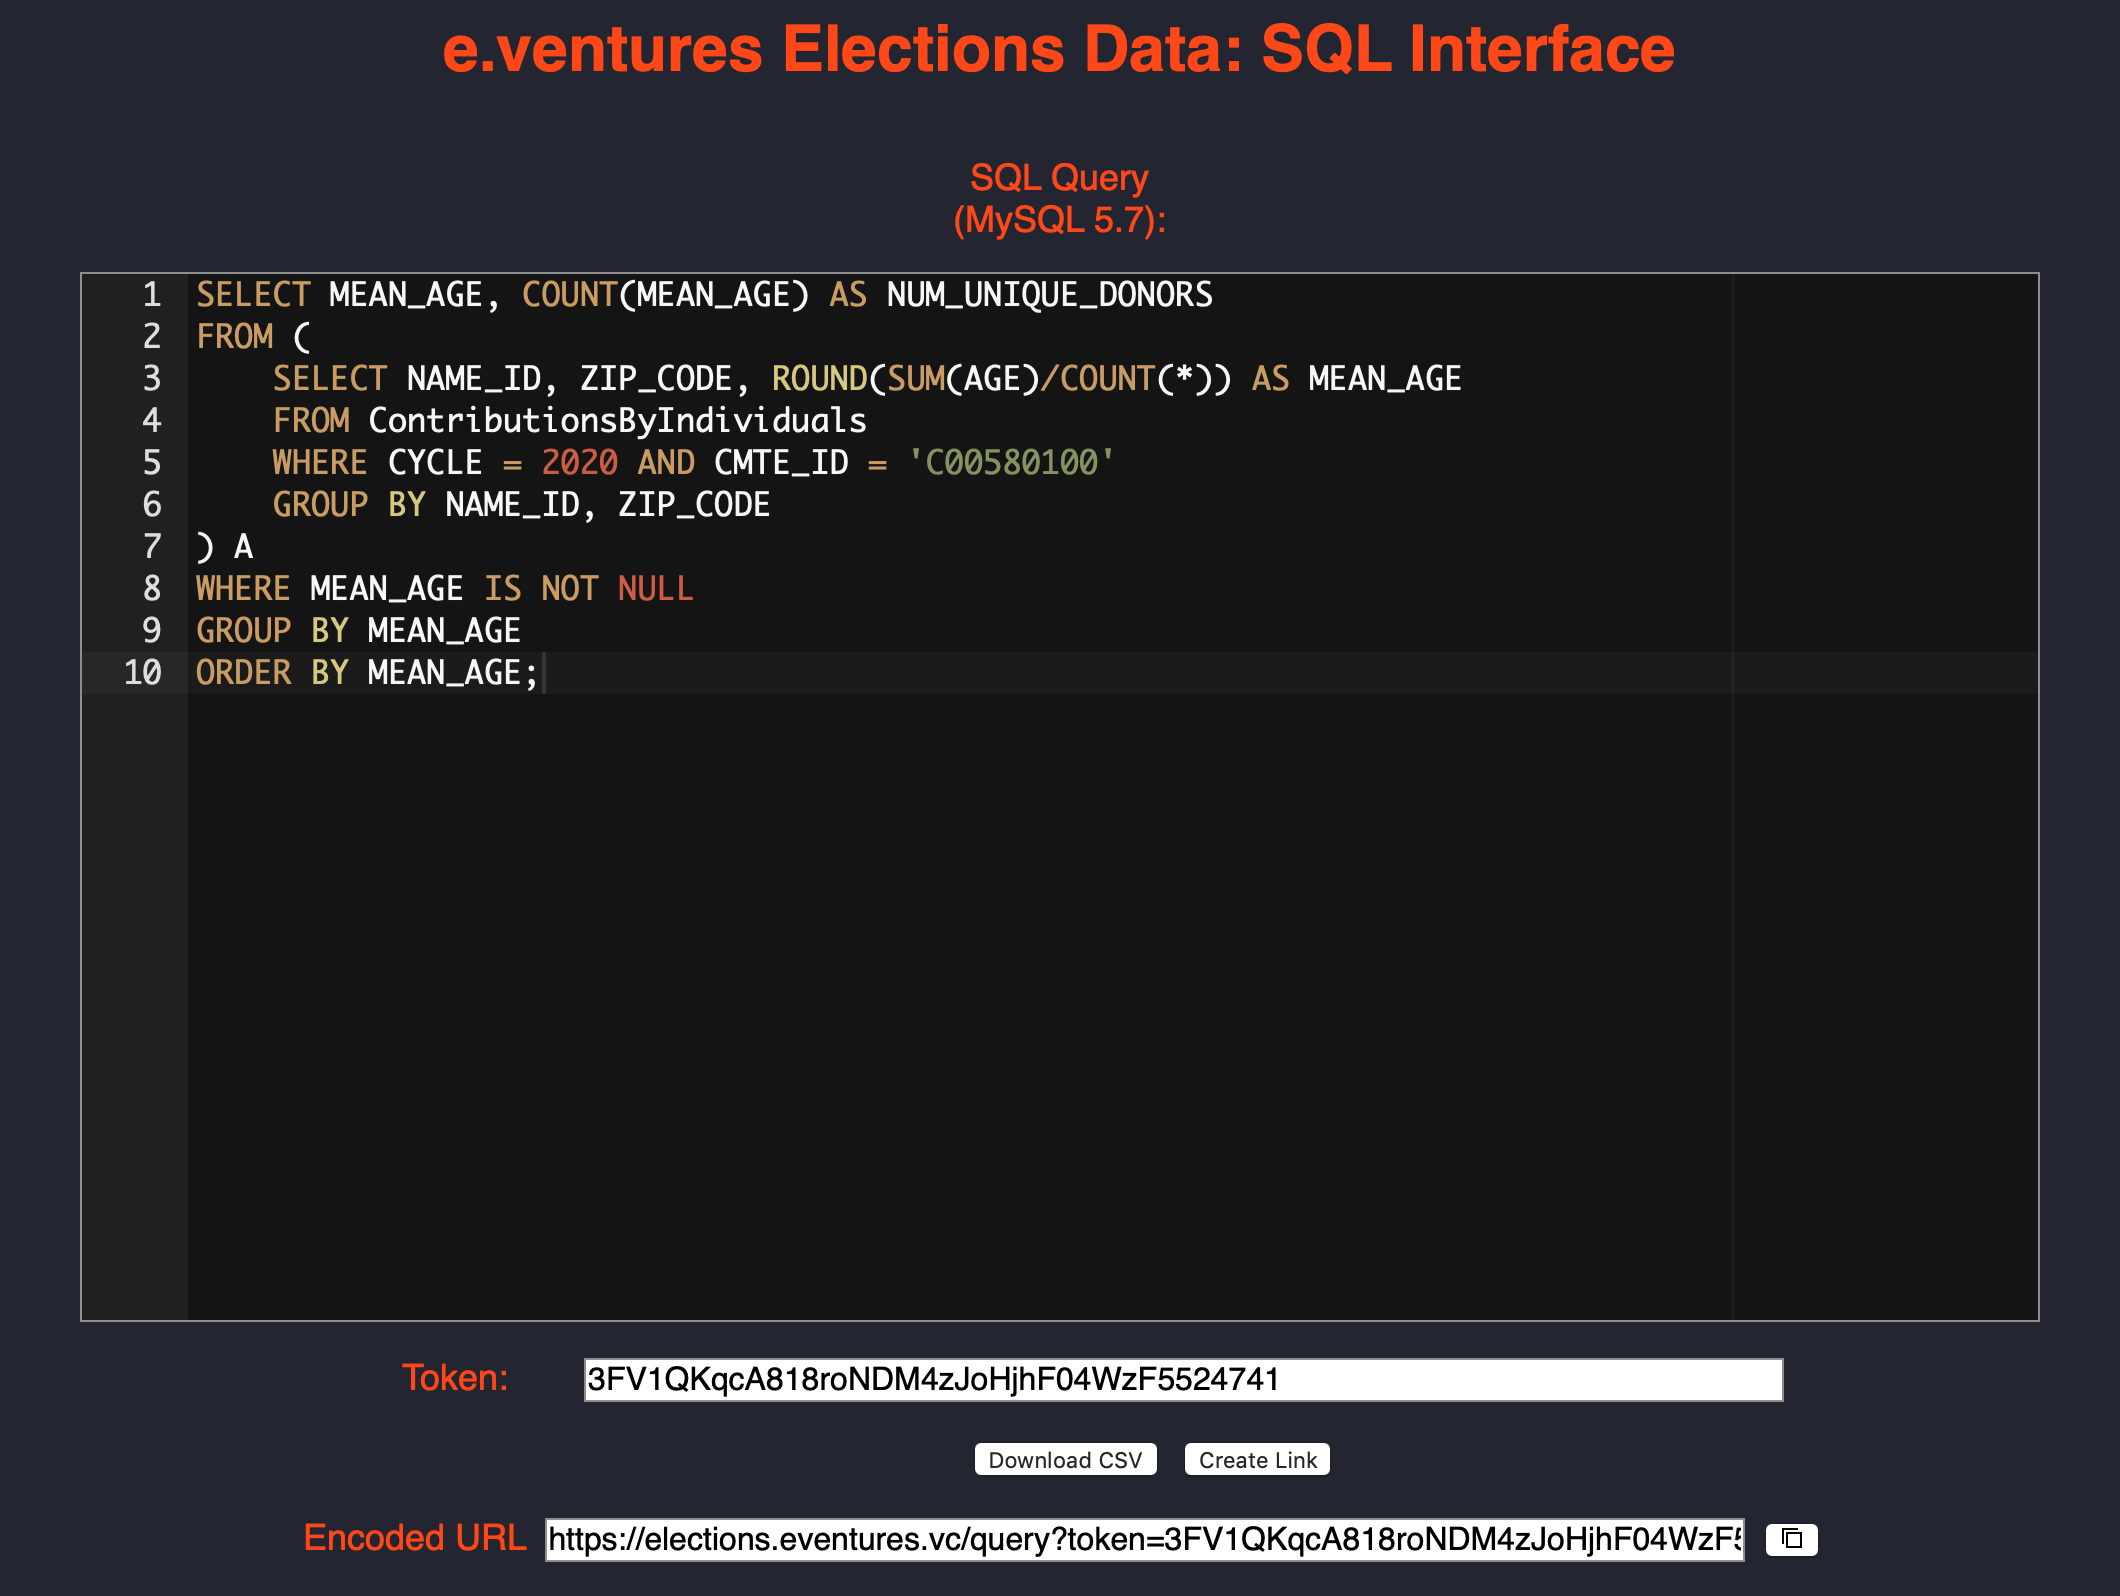 The FEC Data SQL interface with an online SQL editor to download data or create embeddable links.